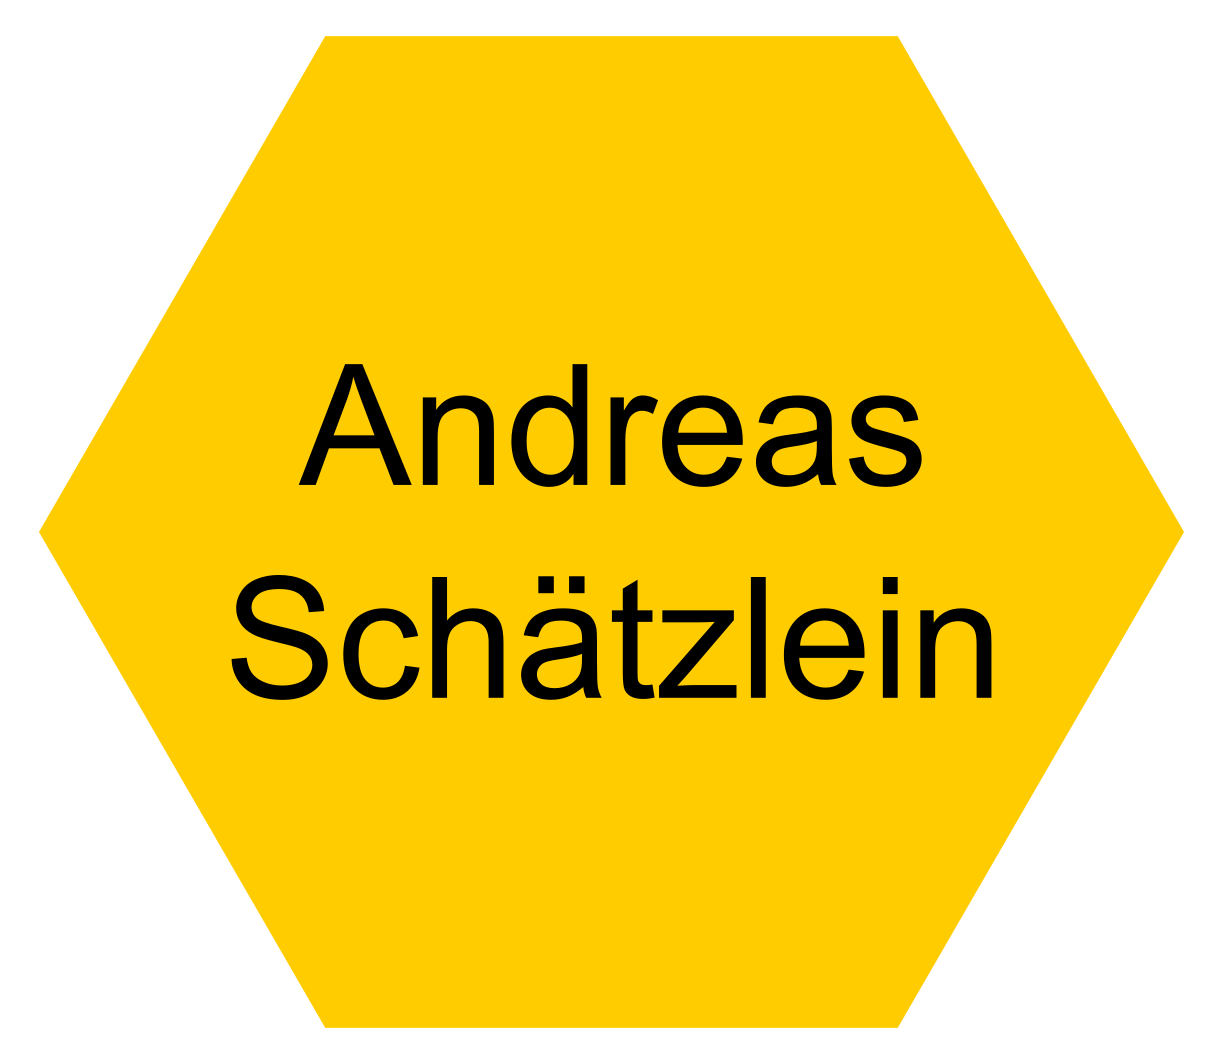 Prof. Andreas Schatzlein (UCL School of Pharmacy: Principal Investigator) - Click this icon to reveal their contact details.